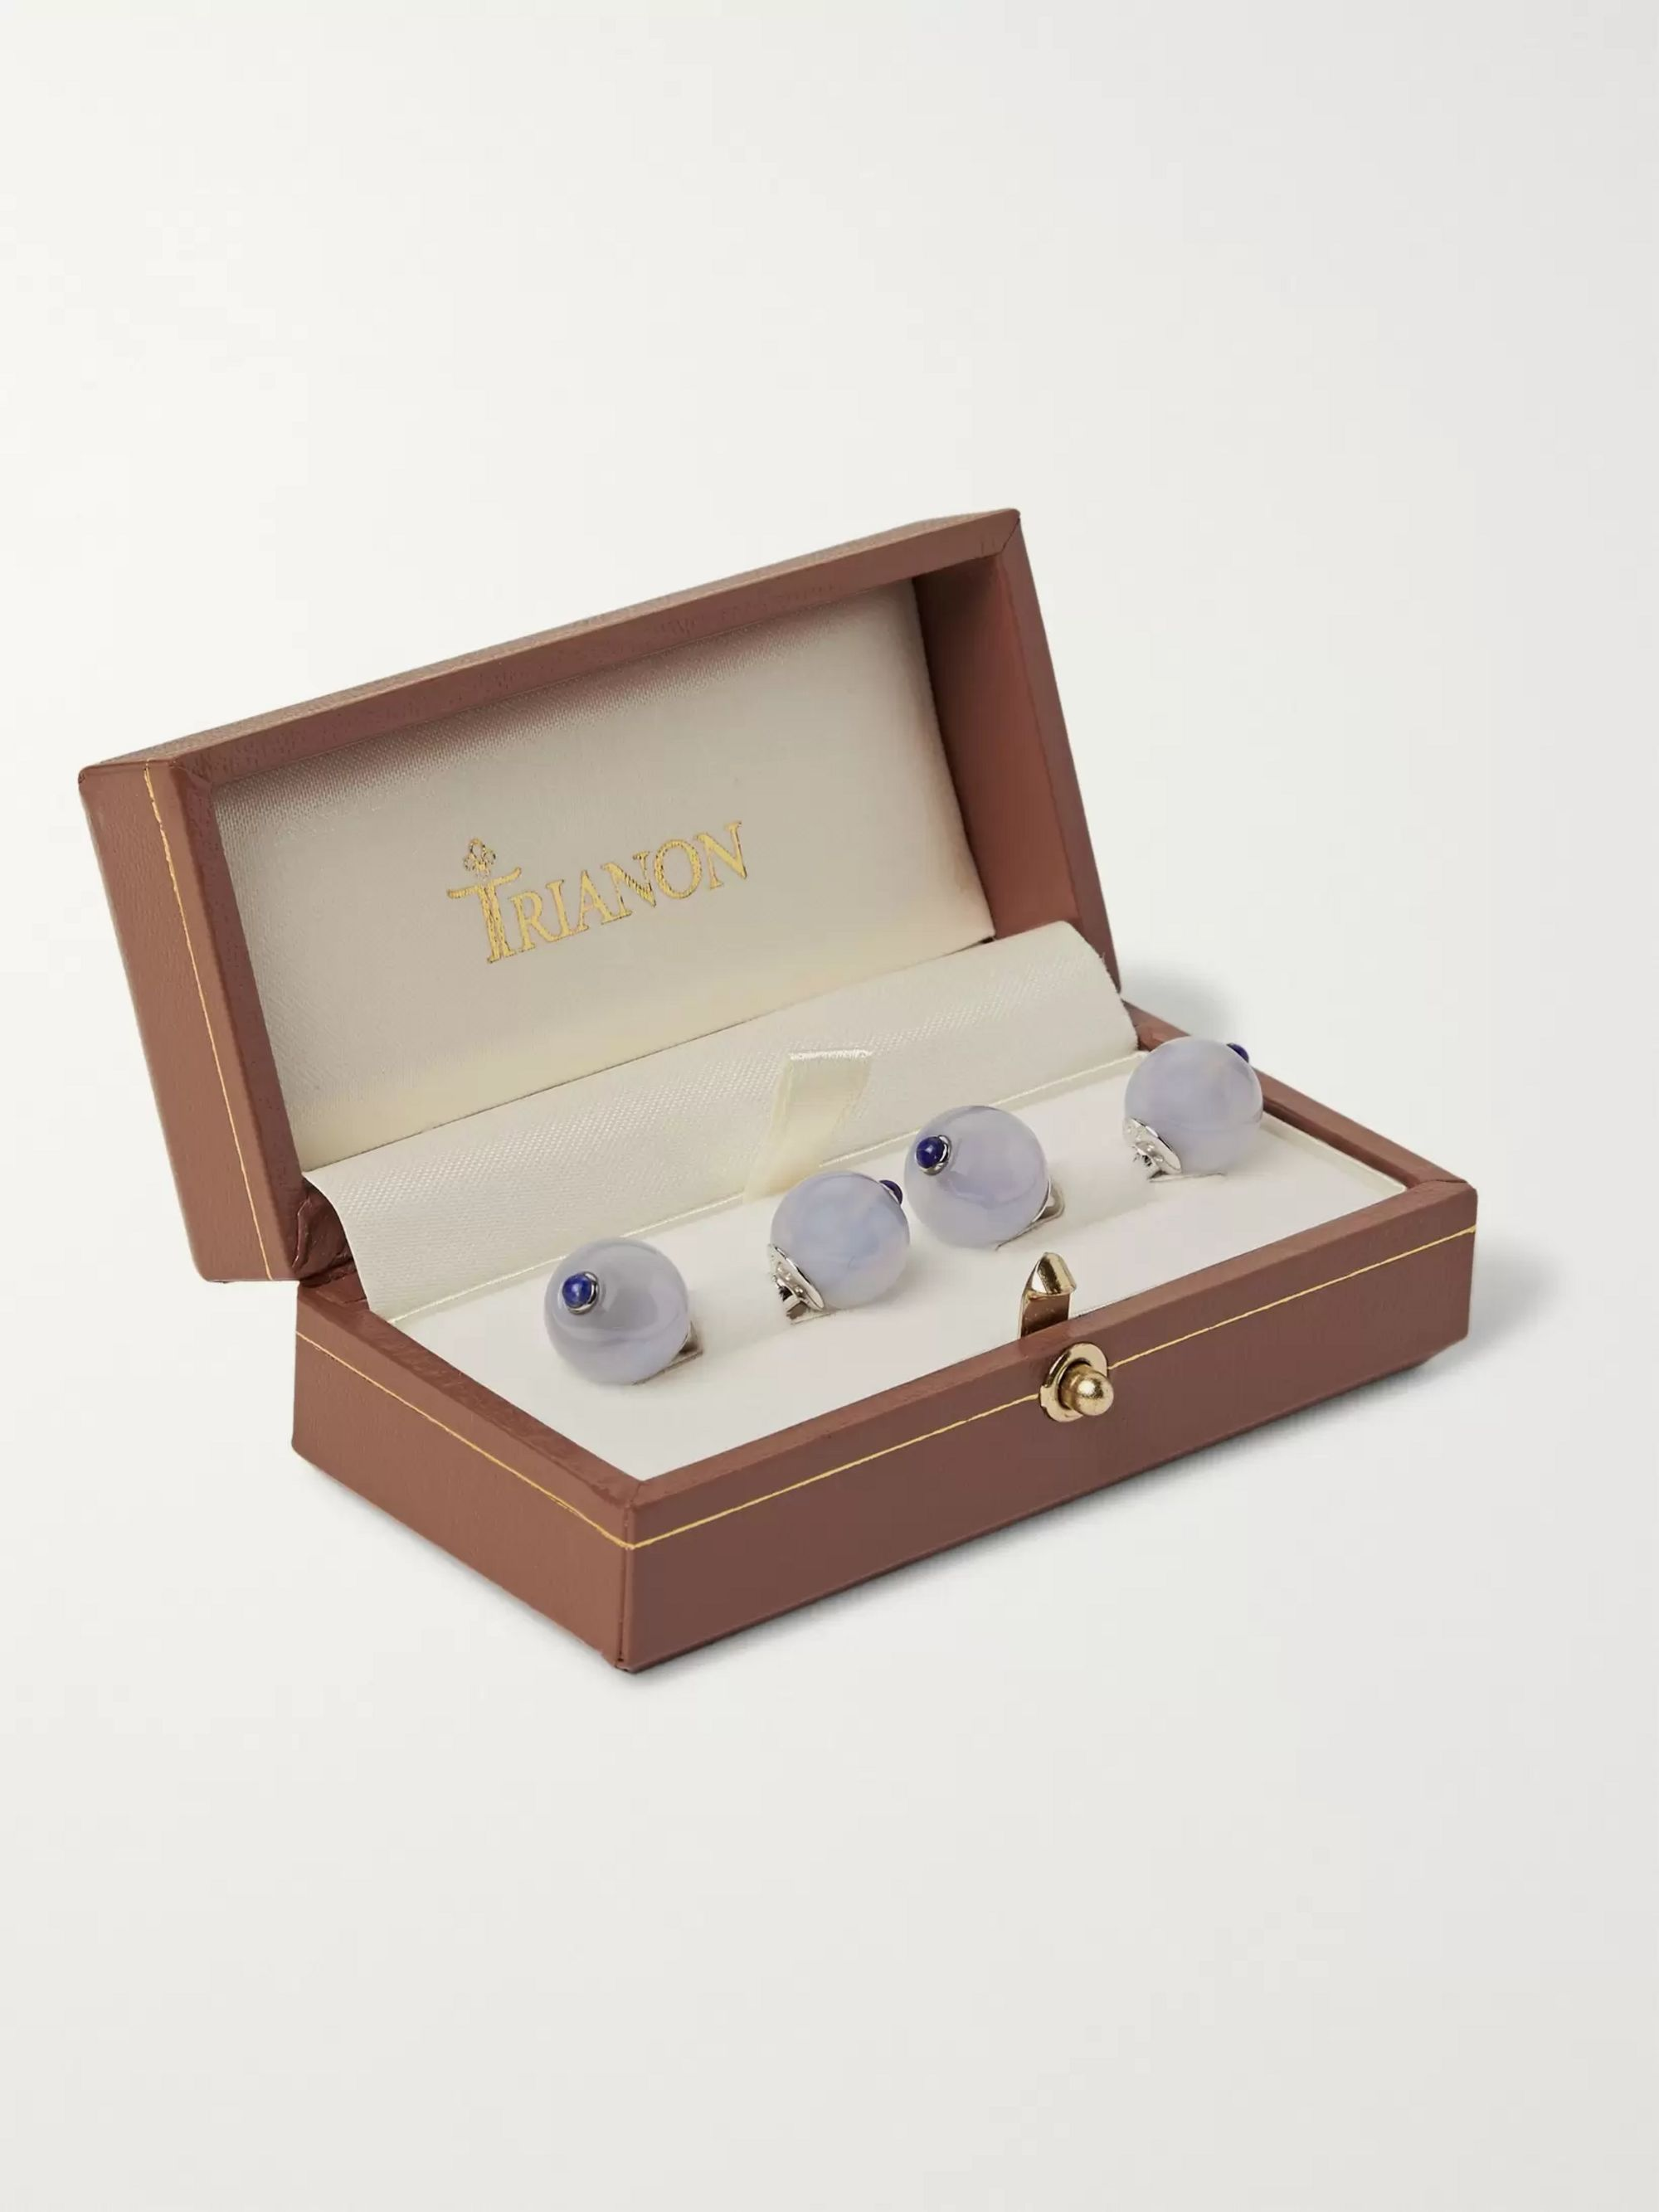 Trianon 18-Karat White Gold, Chalcedony and Lapis Cufflinks